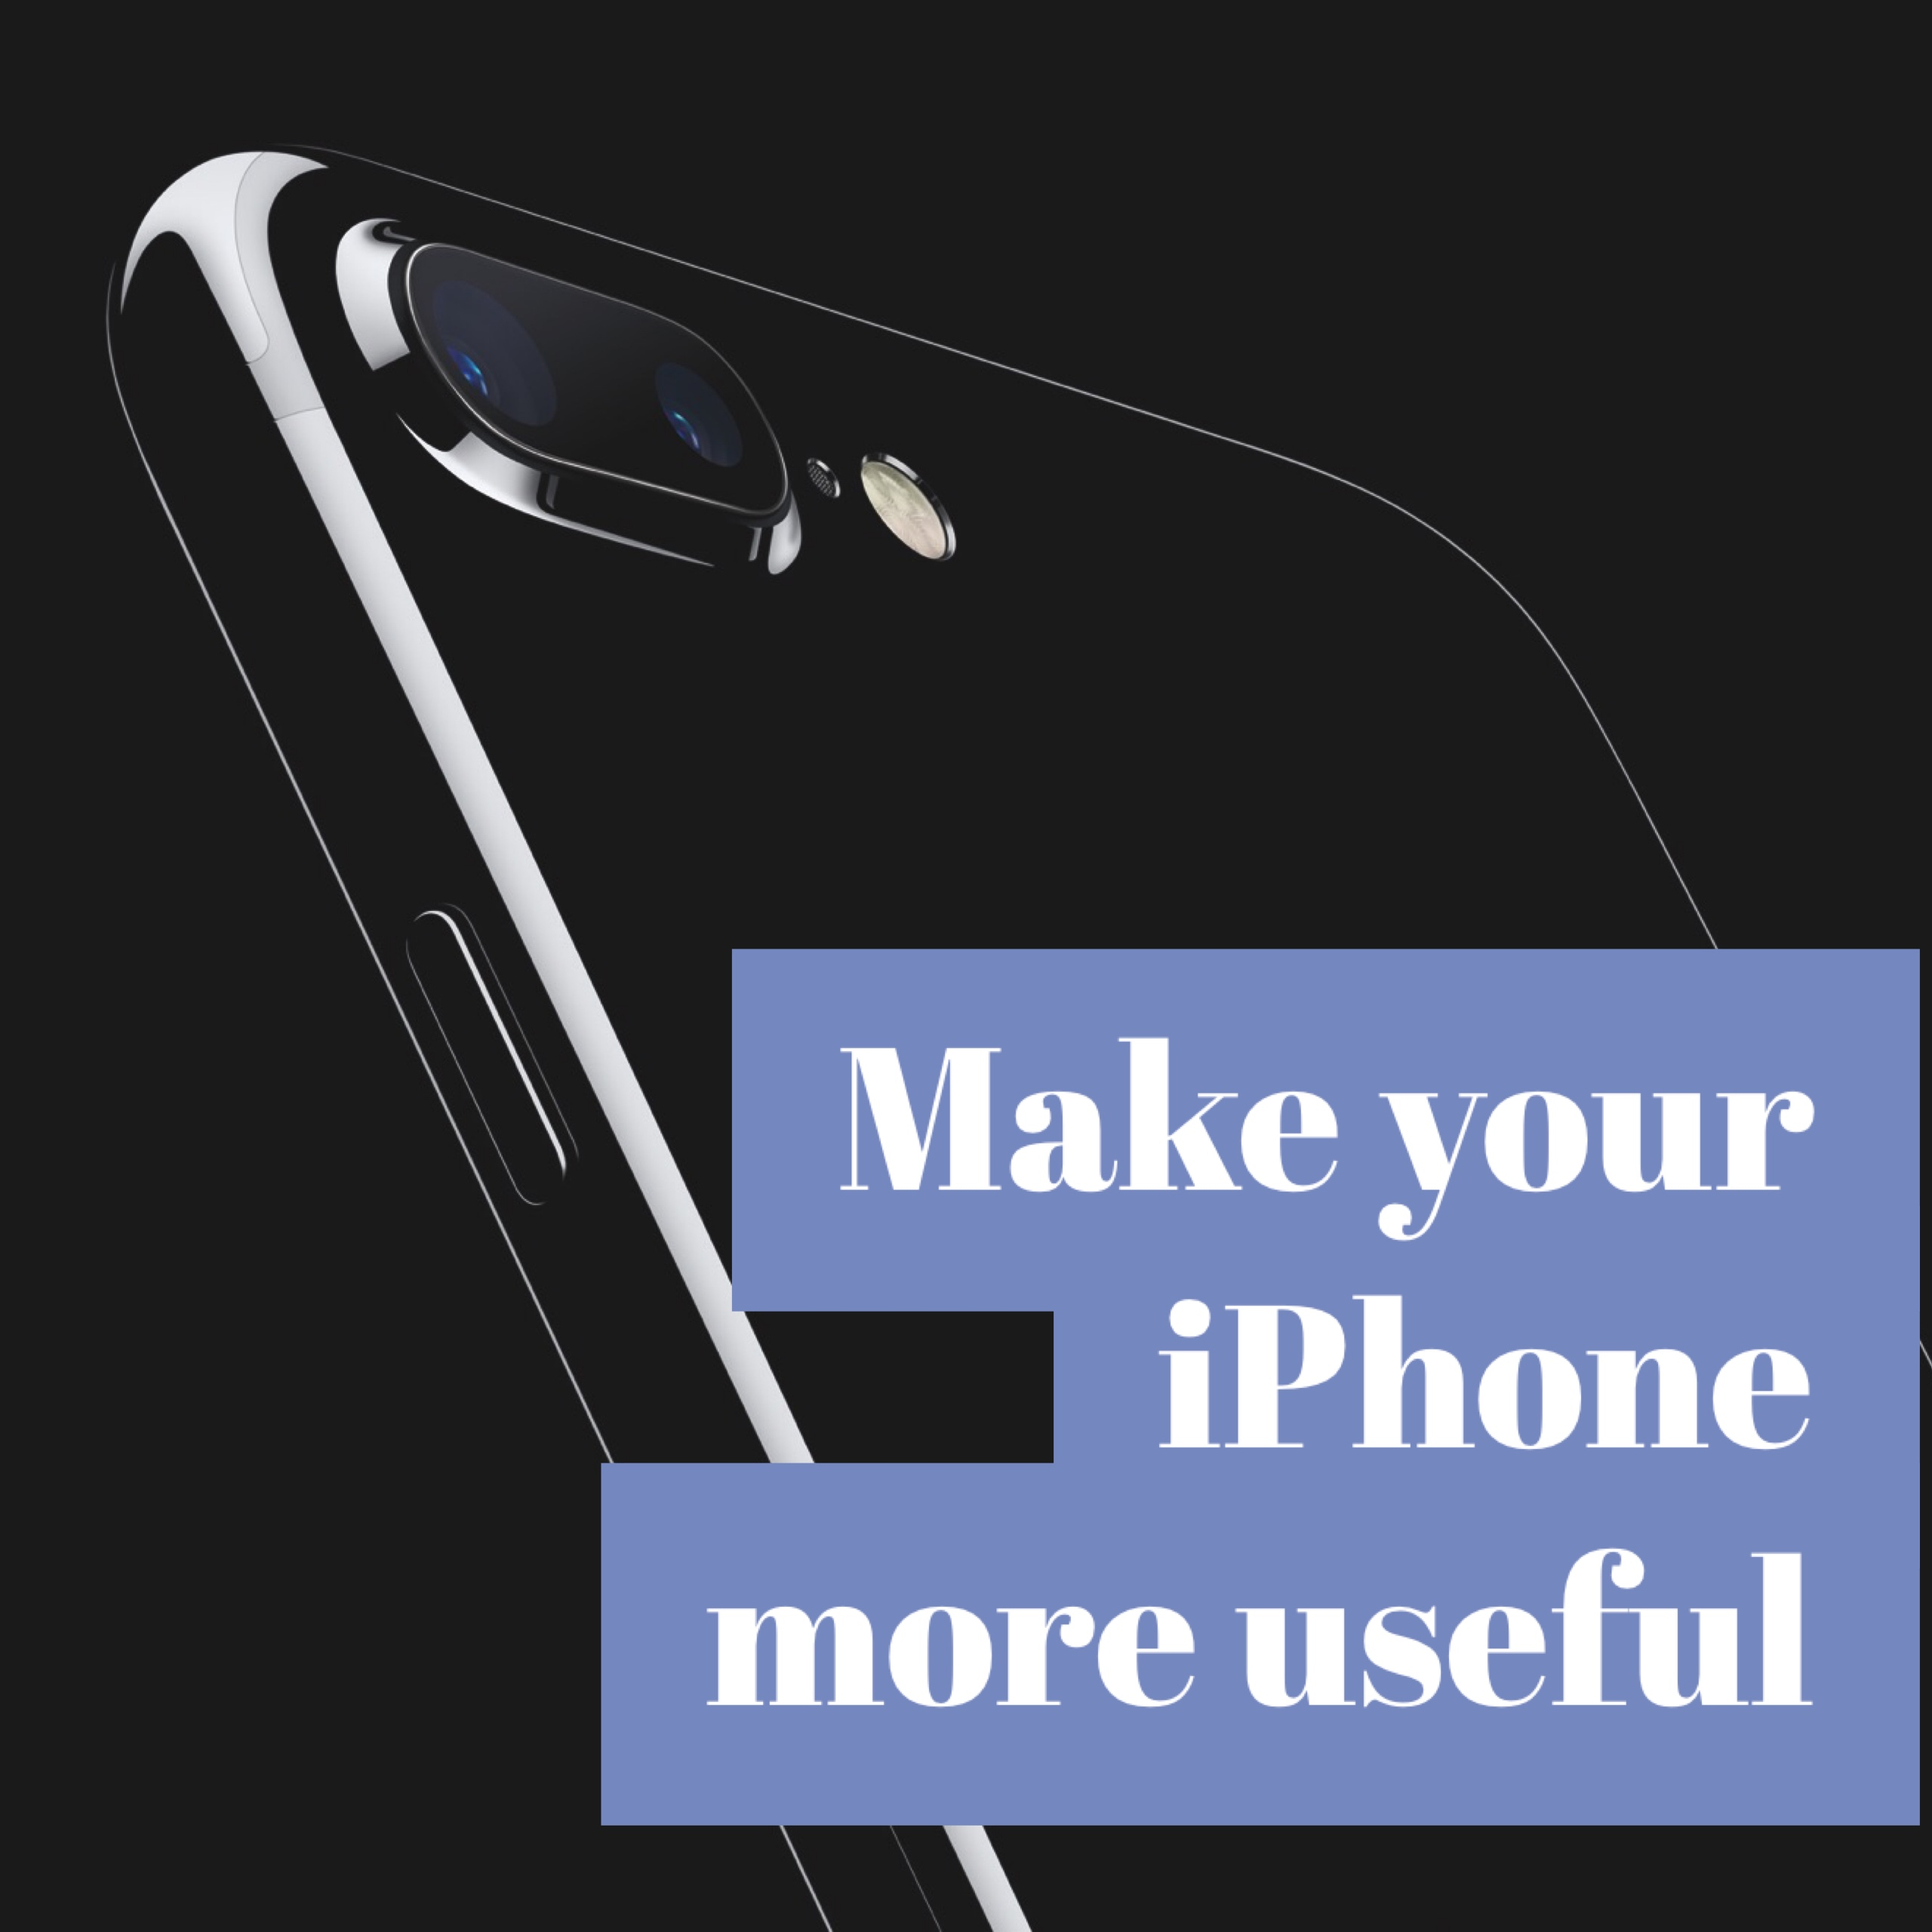 how to make iphone ping when missing